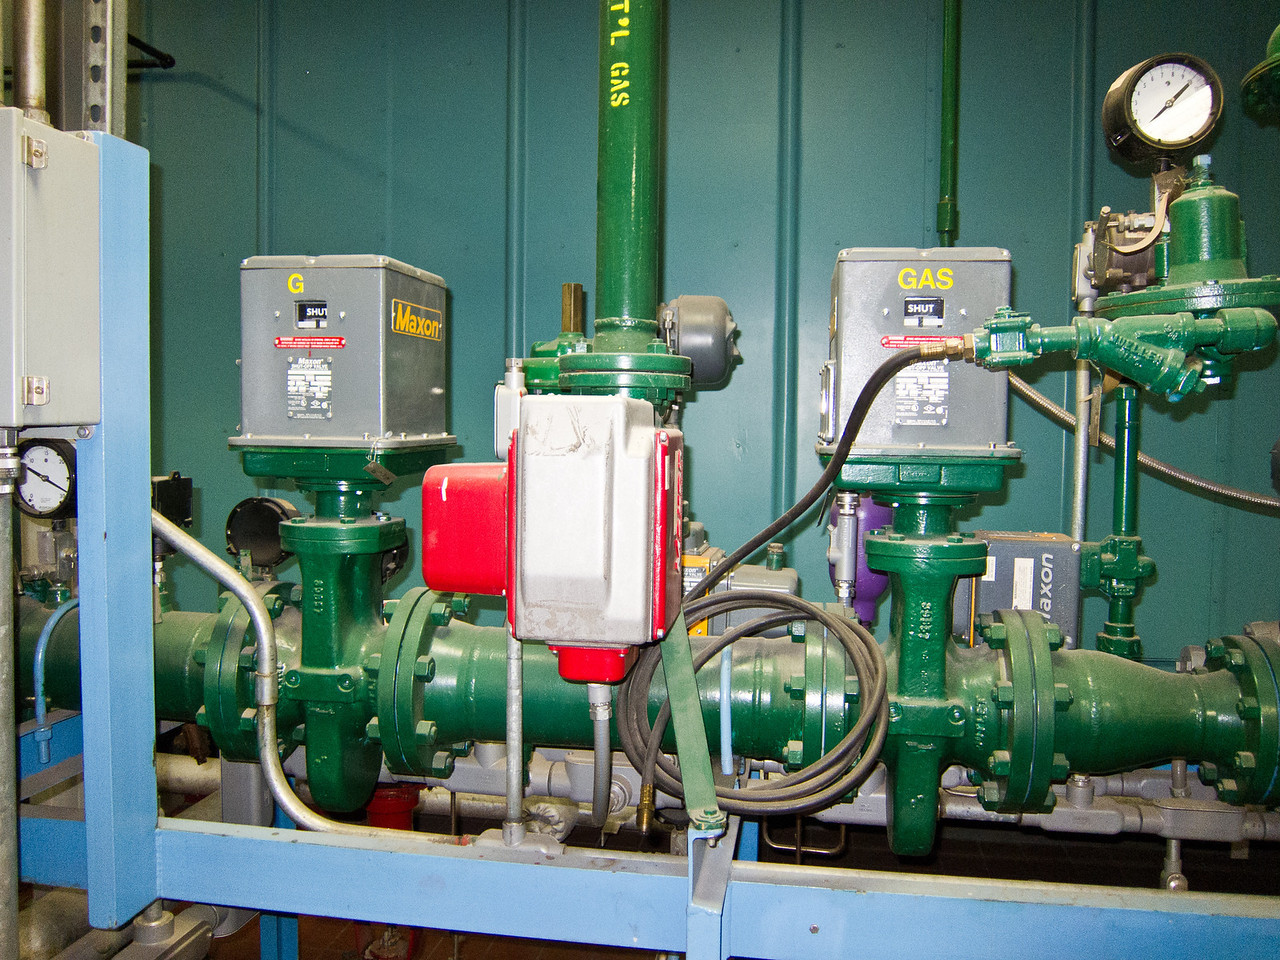 The natural gas supply shut off mechanism. There are two in-line valves to provide a redundant shut-off capability. This is a fail-safe mechanism to shut down the boiler if a dangerous condition were to develop.